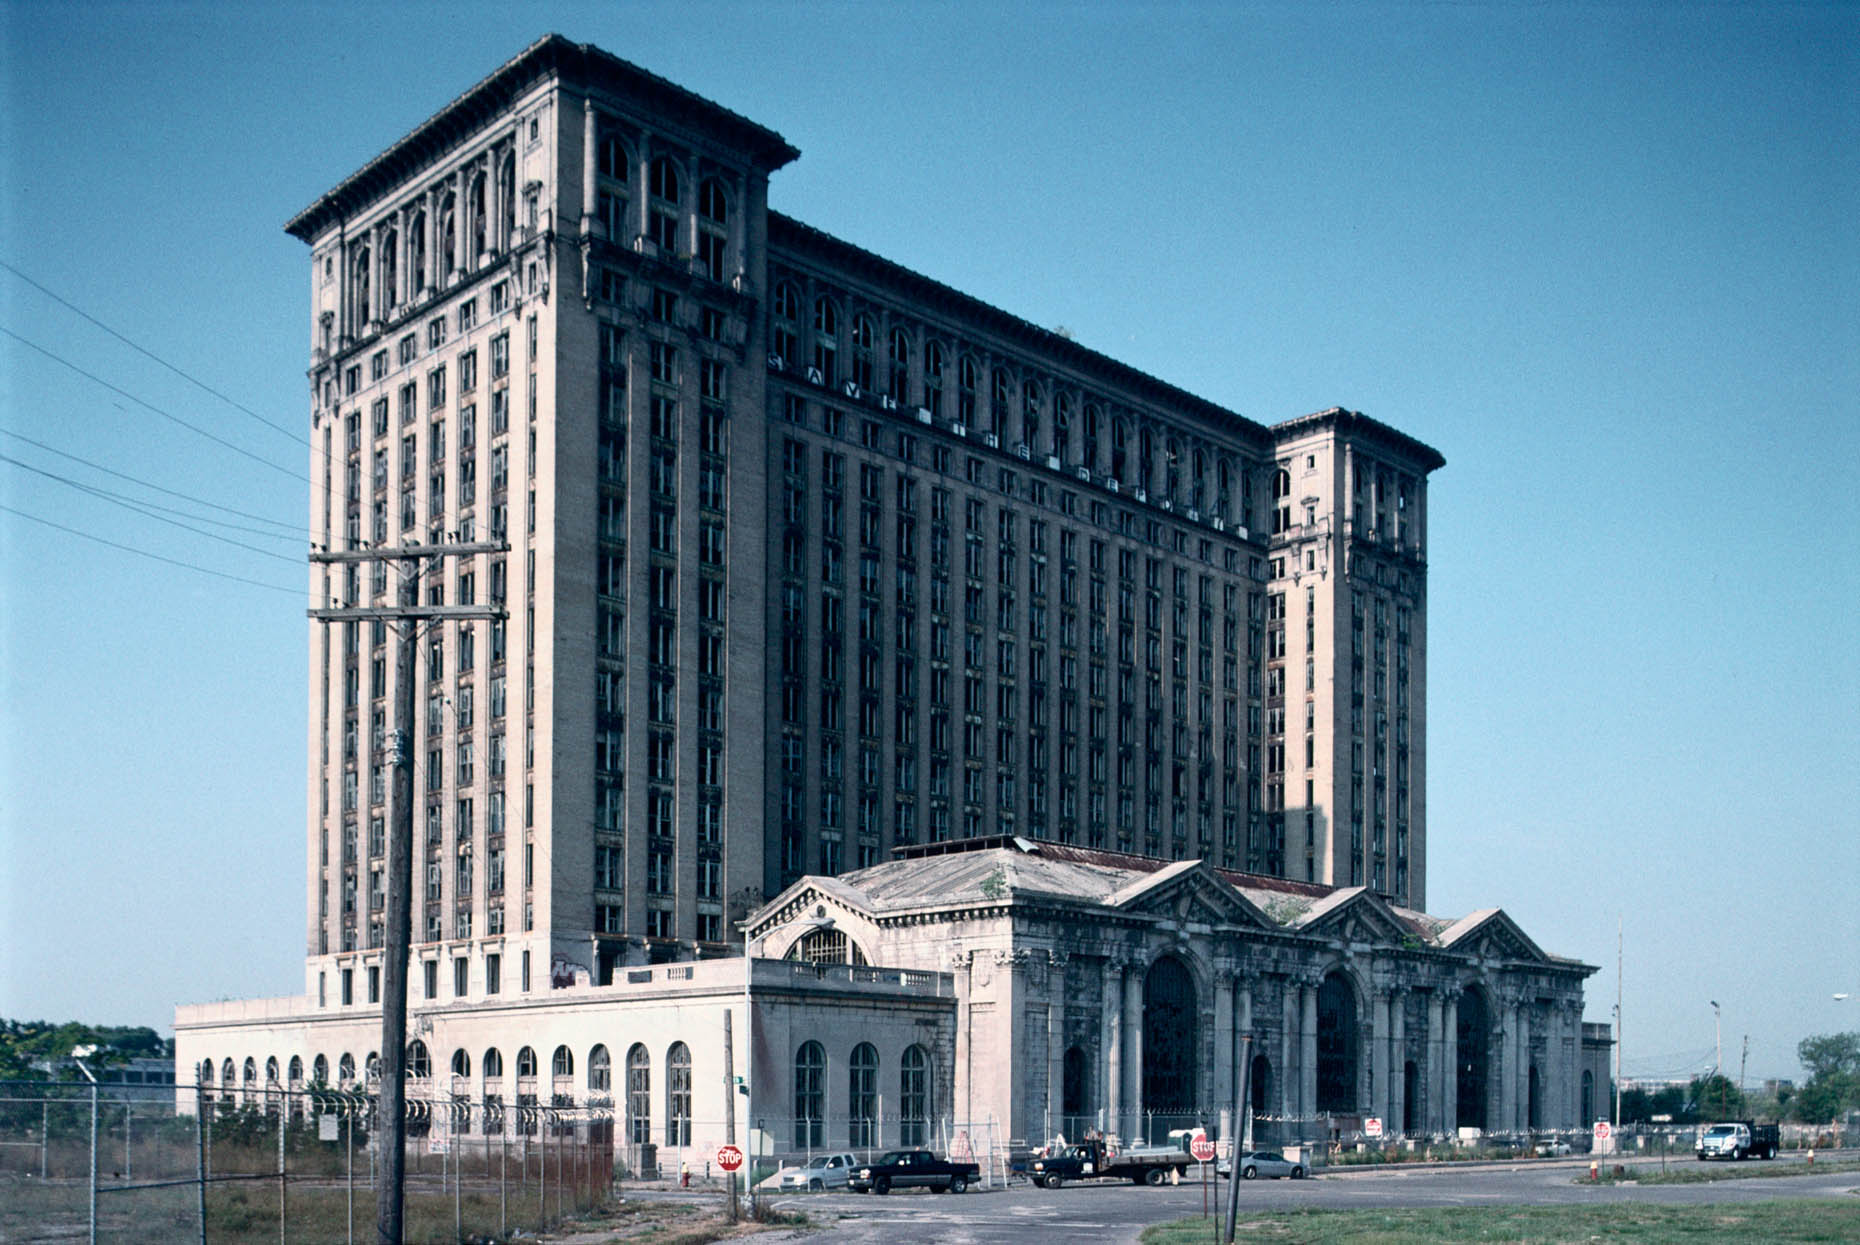 07_Former Michigan Central Railroad Station during the filming of Transformers 3, 2011_-DUP.jpg